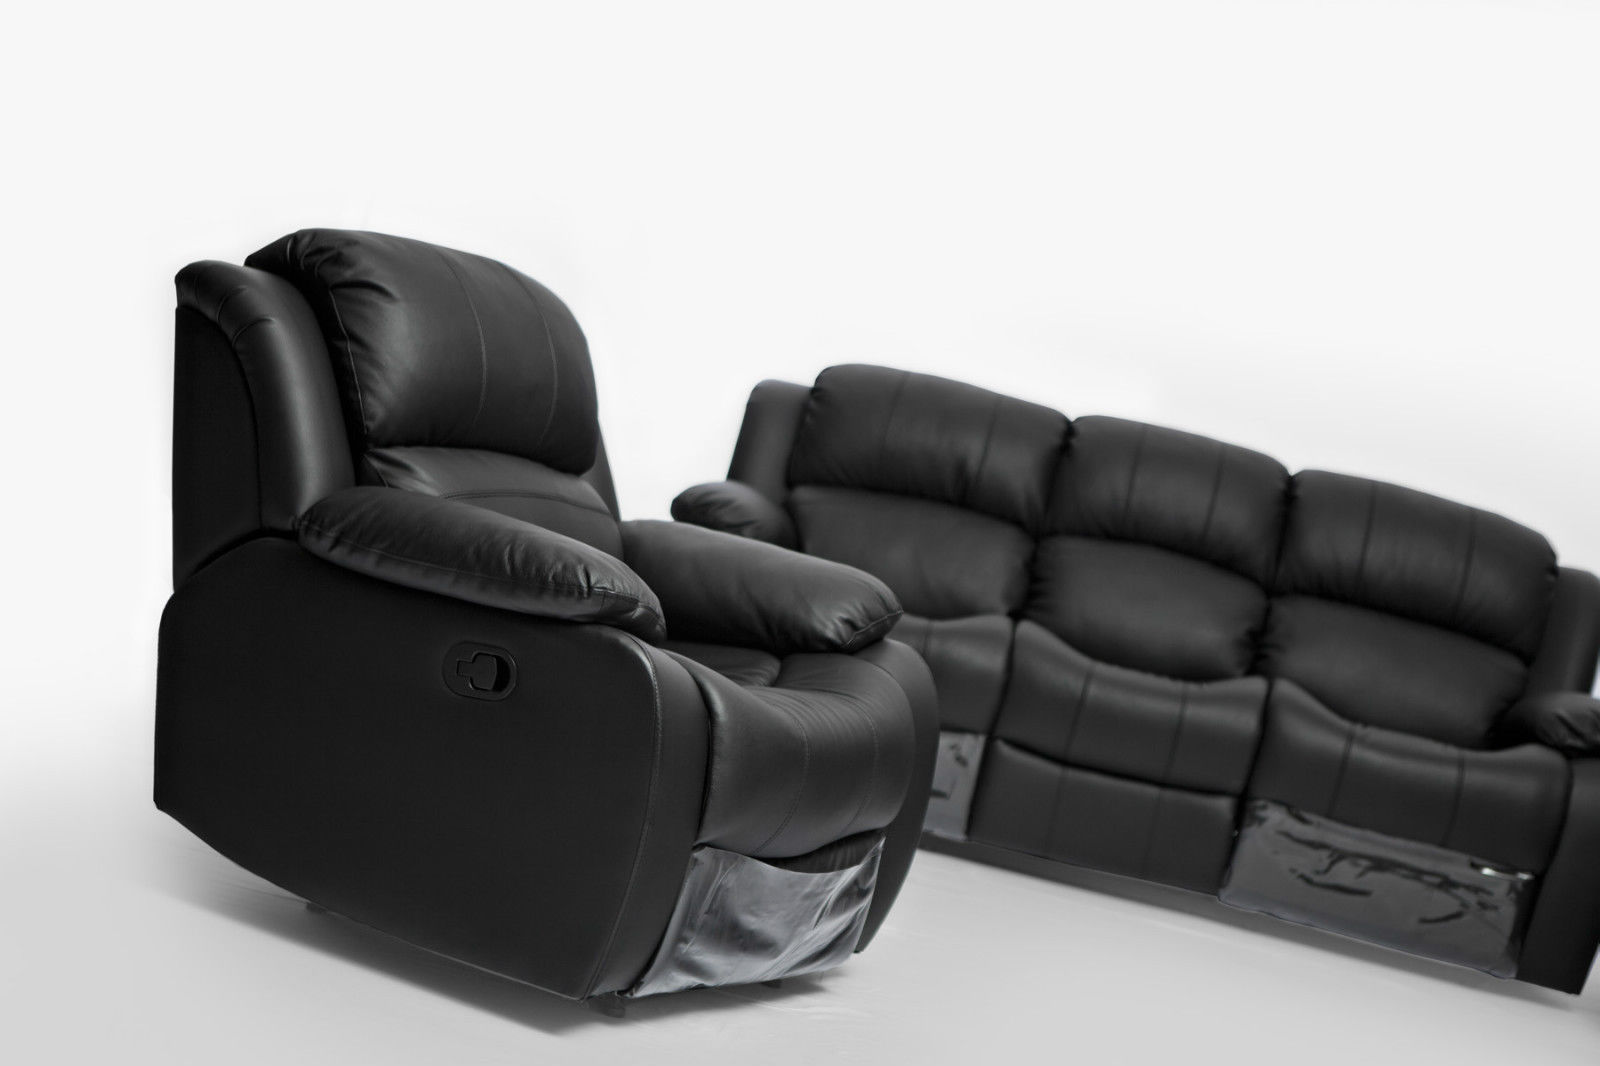 Kacey Brand New Black Leather 3 Seater Chair Recliner